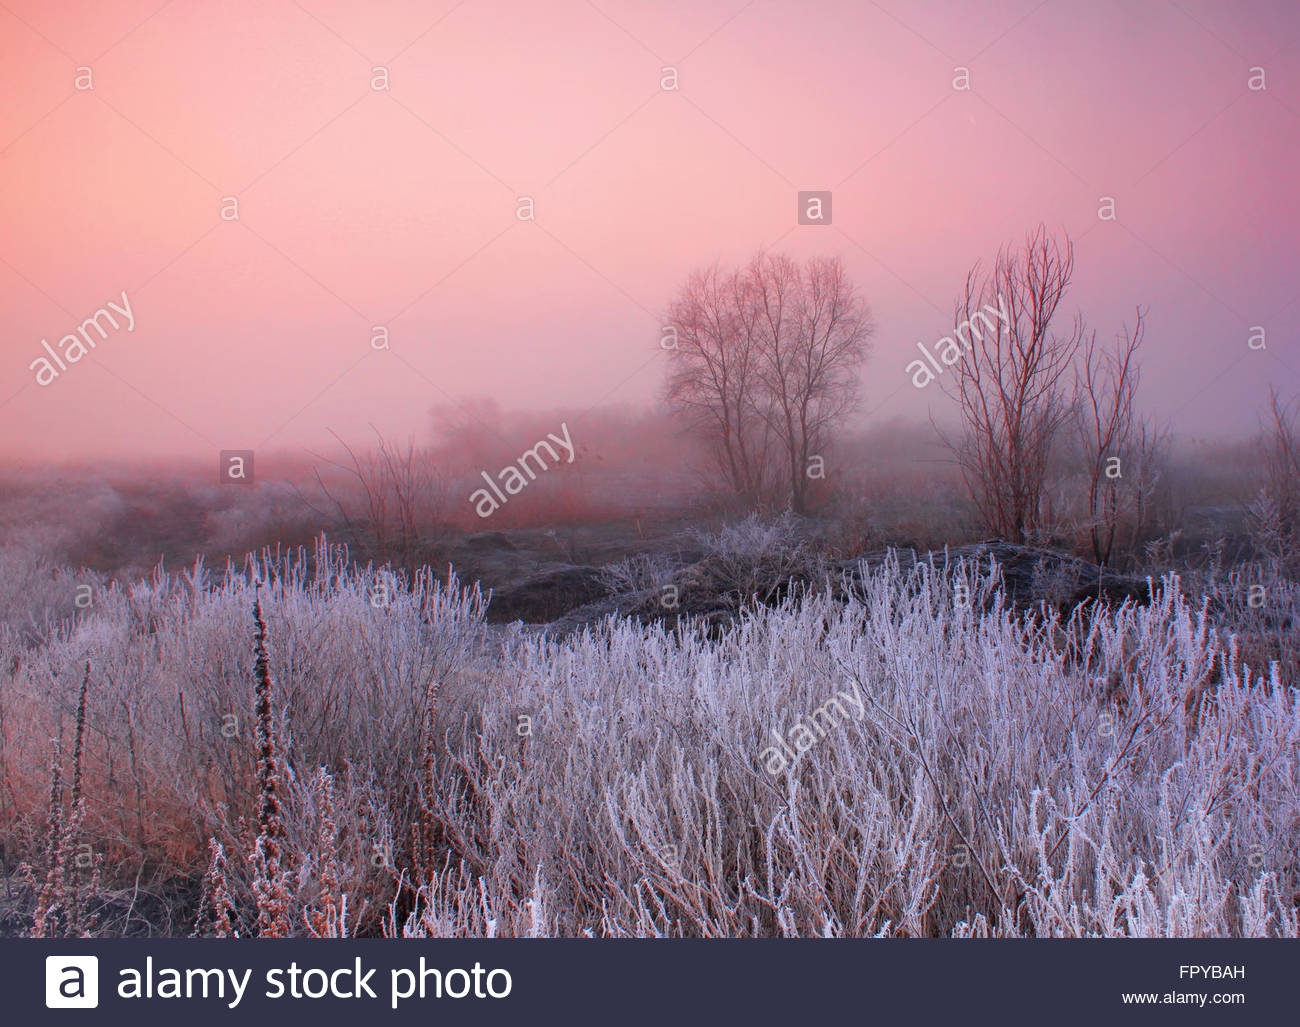 Misty dawn on the field - Stock Image